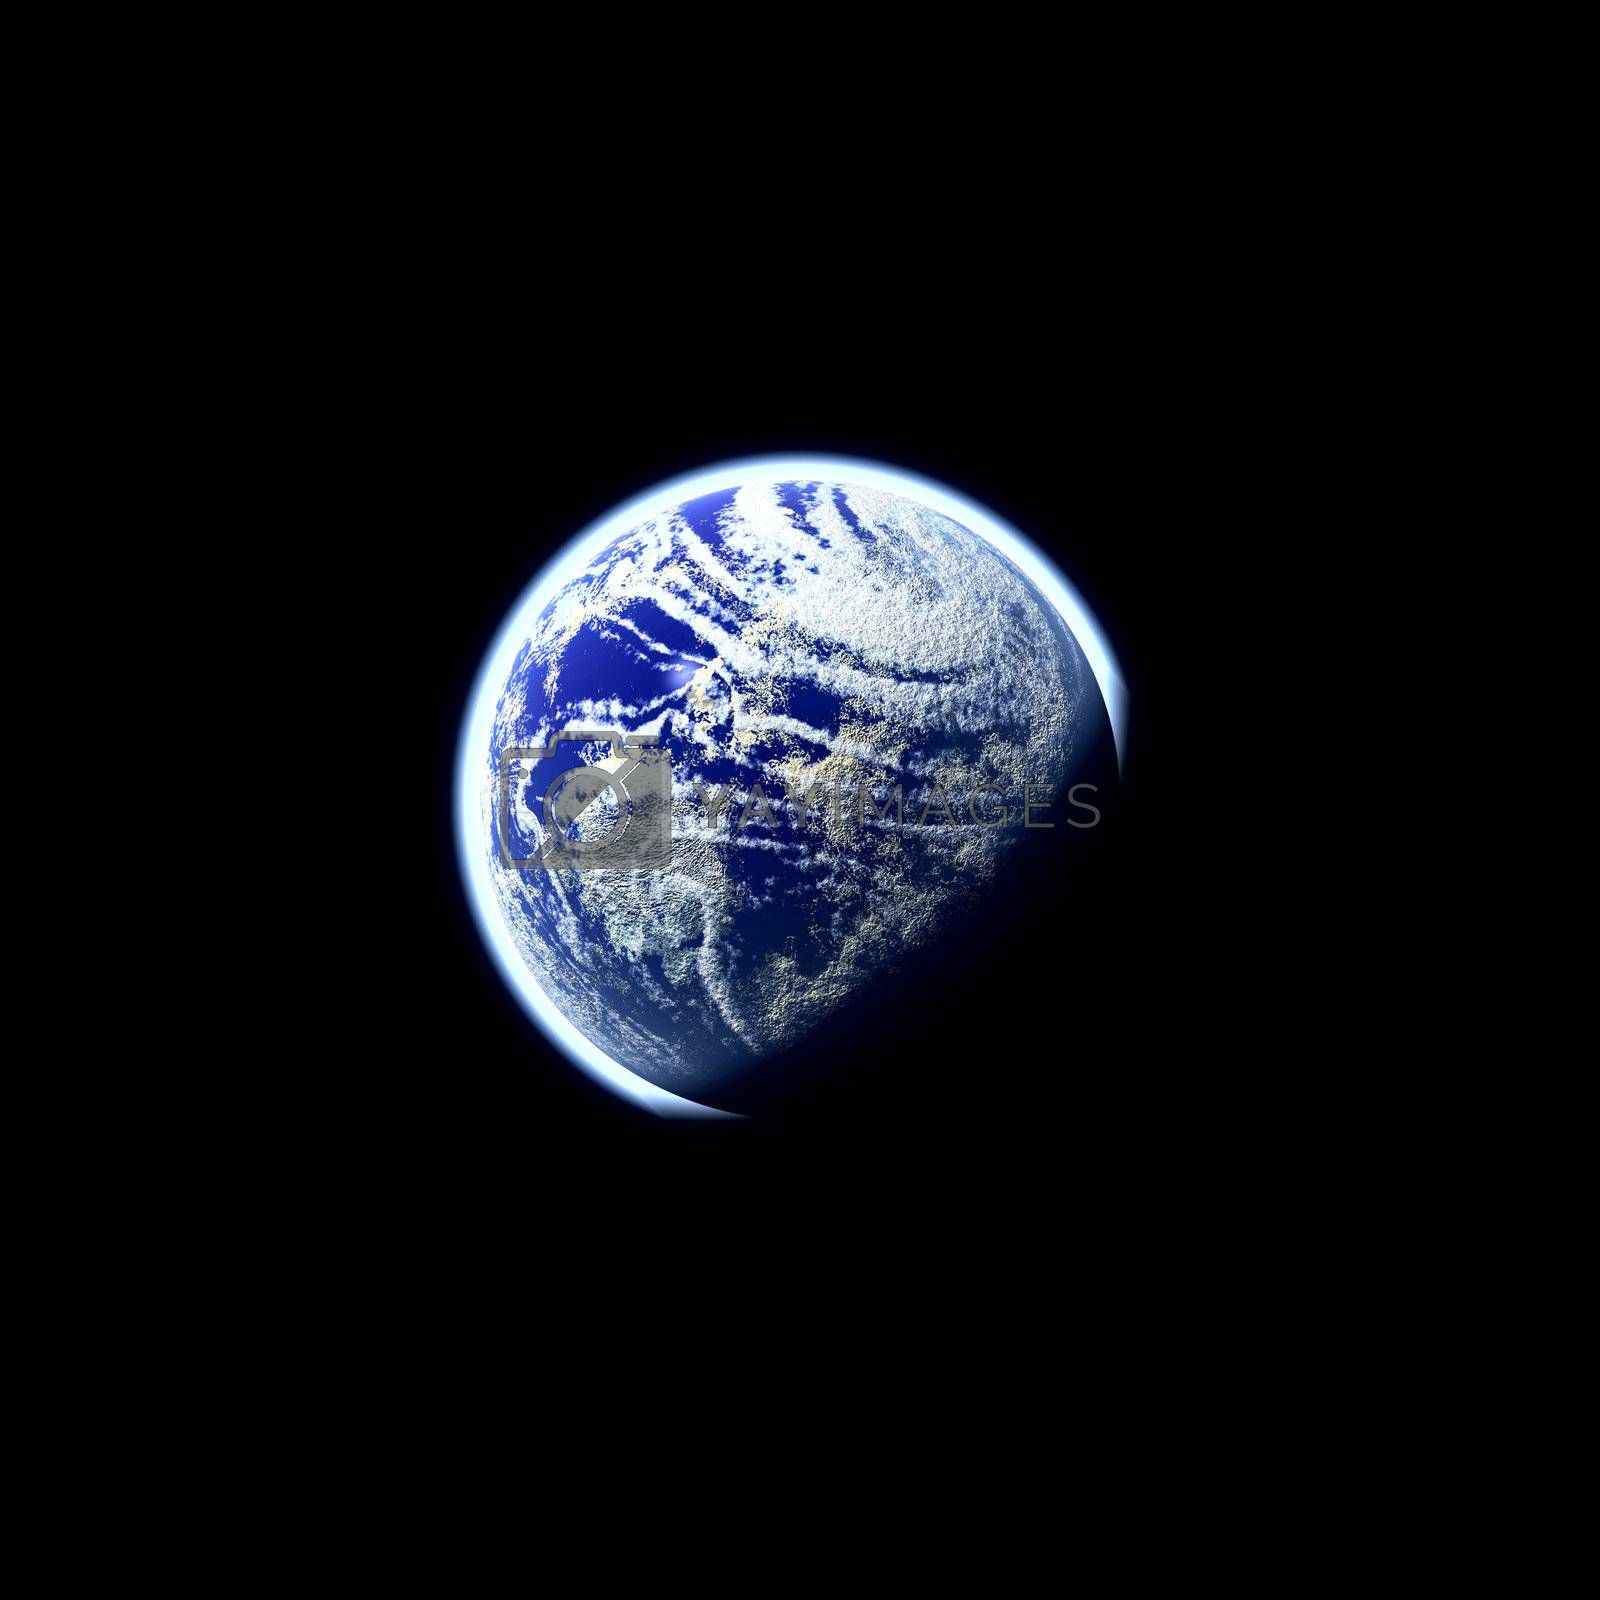 A glowing planet earth illustration over a black background.